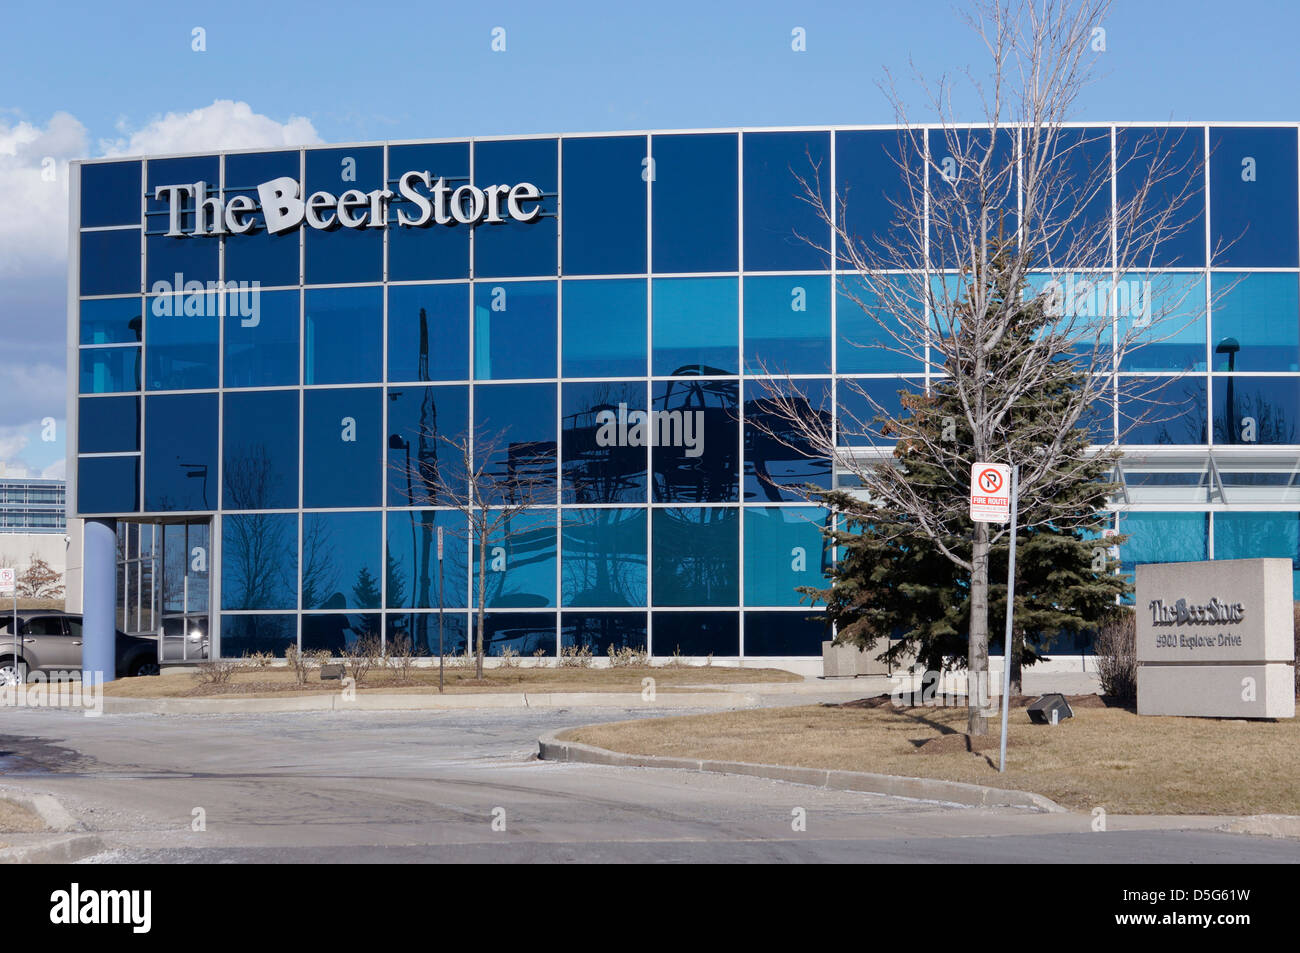 The Beer Store Corporate Office In Mississauga, Ontario